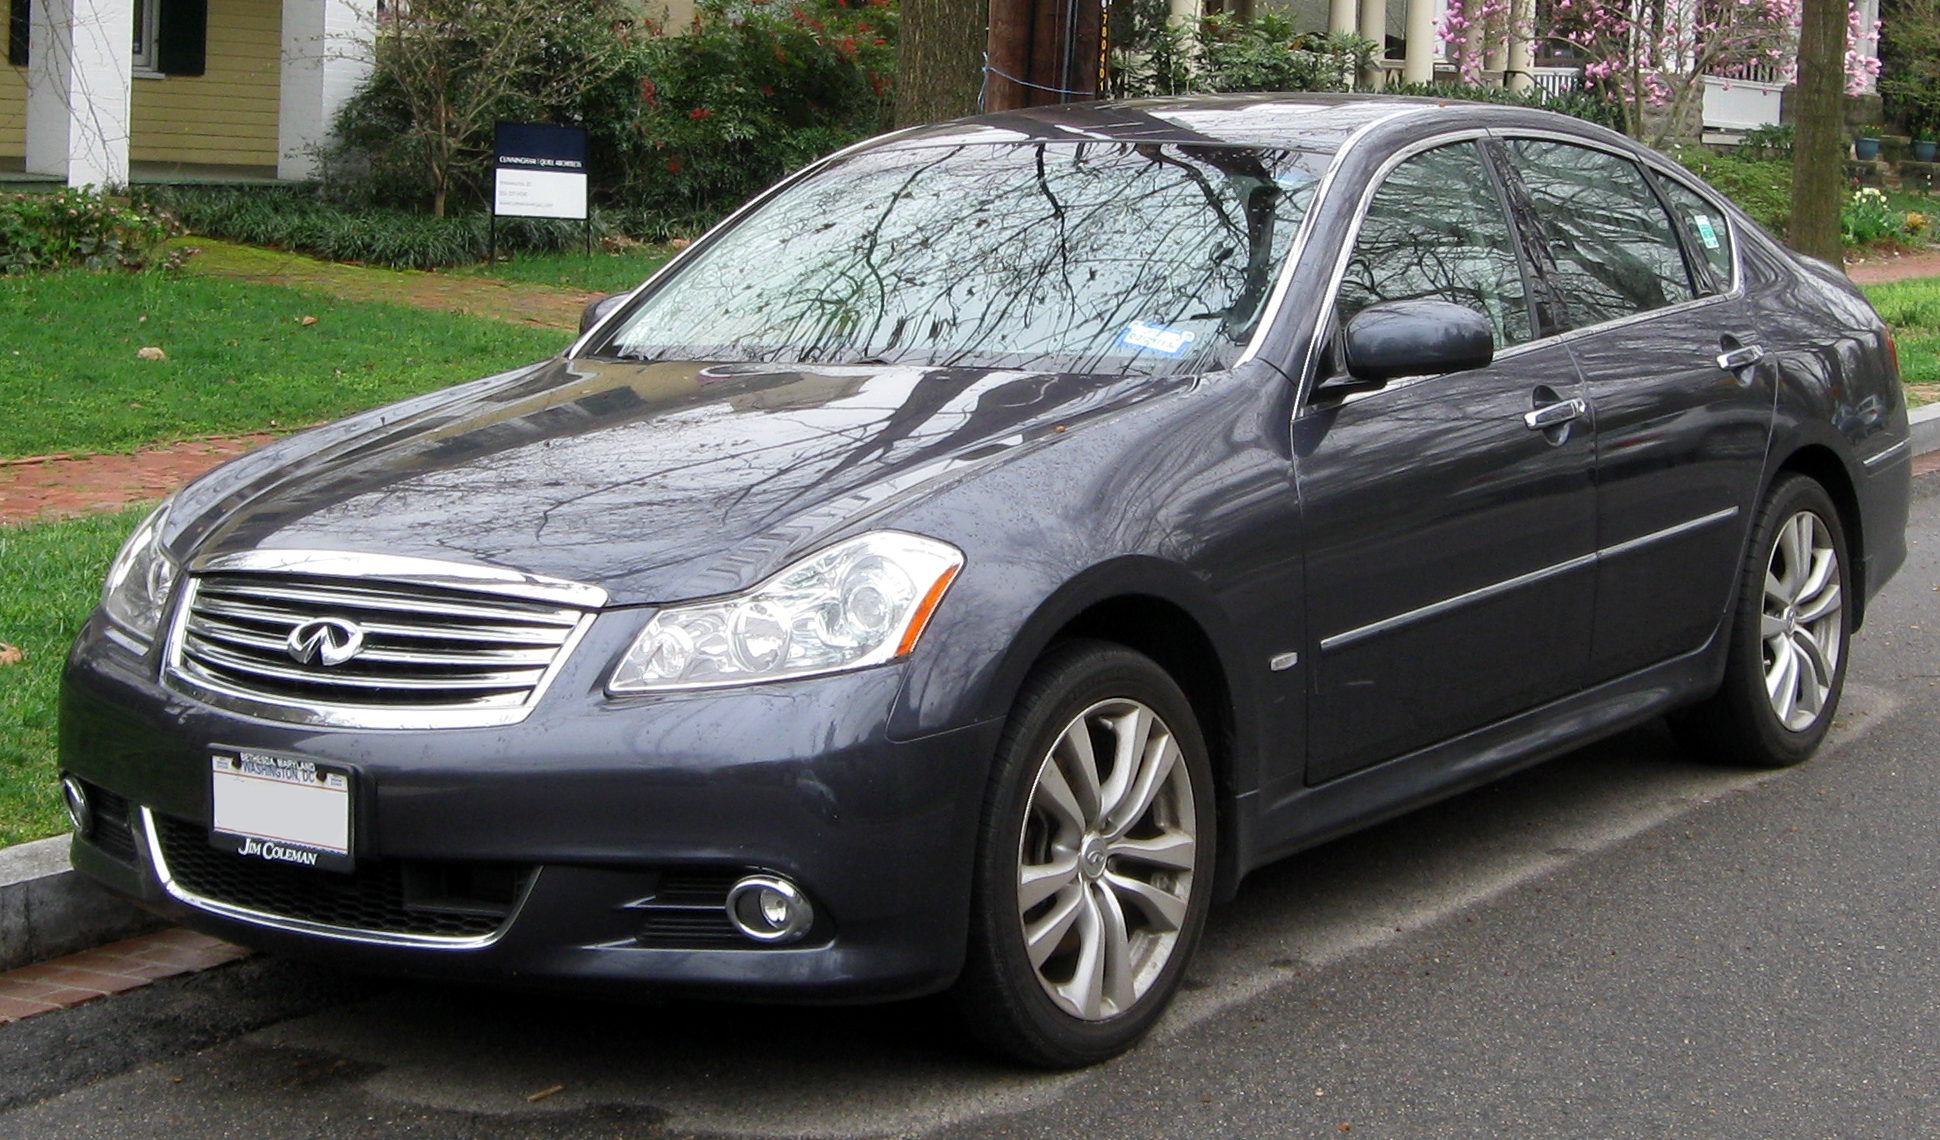 Ford lincoln of franklin 2008 infiniti m35 information and photos momentcar